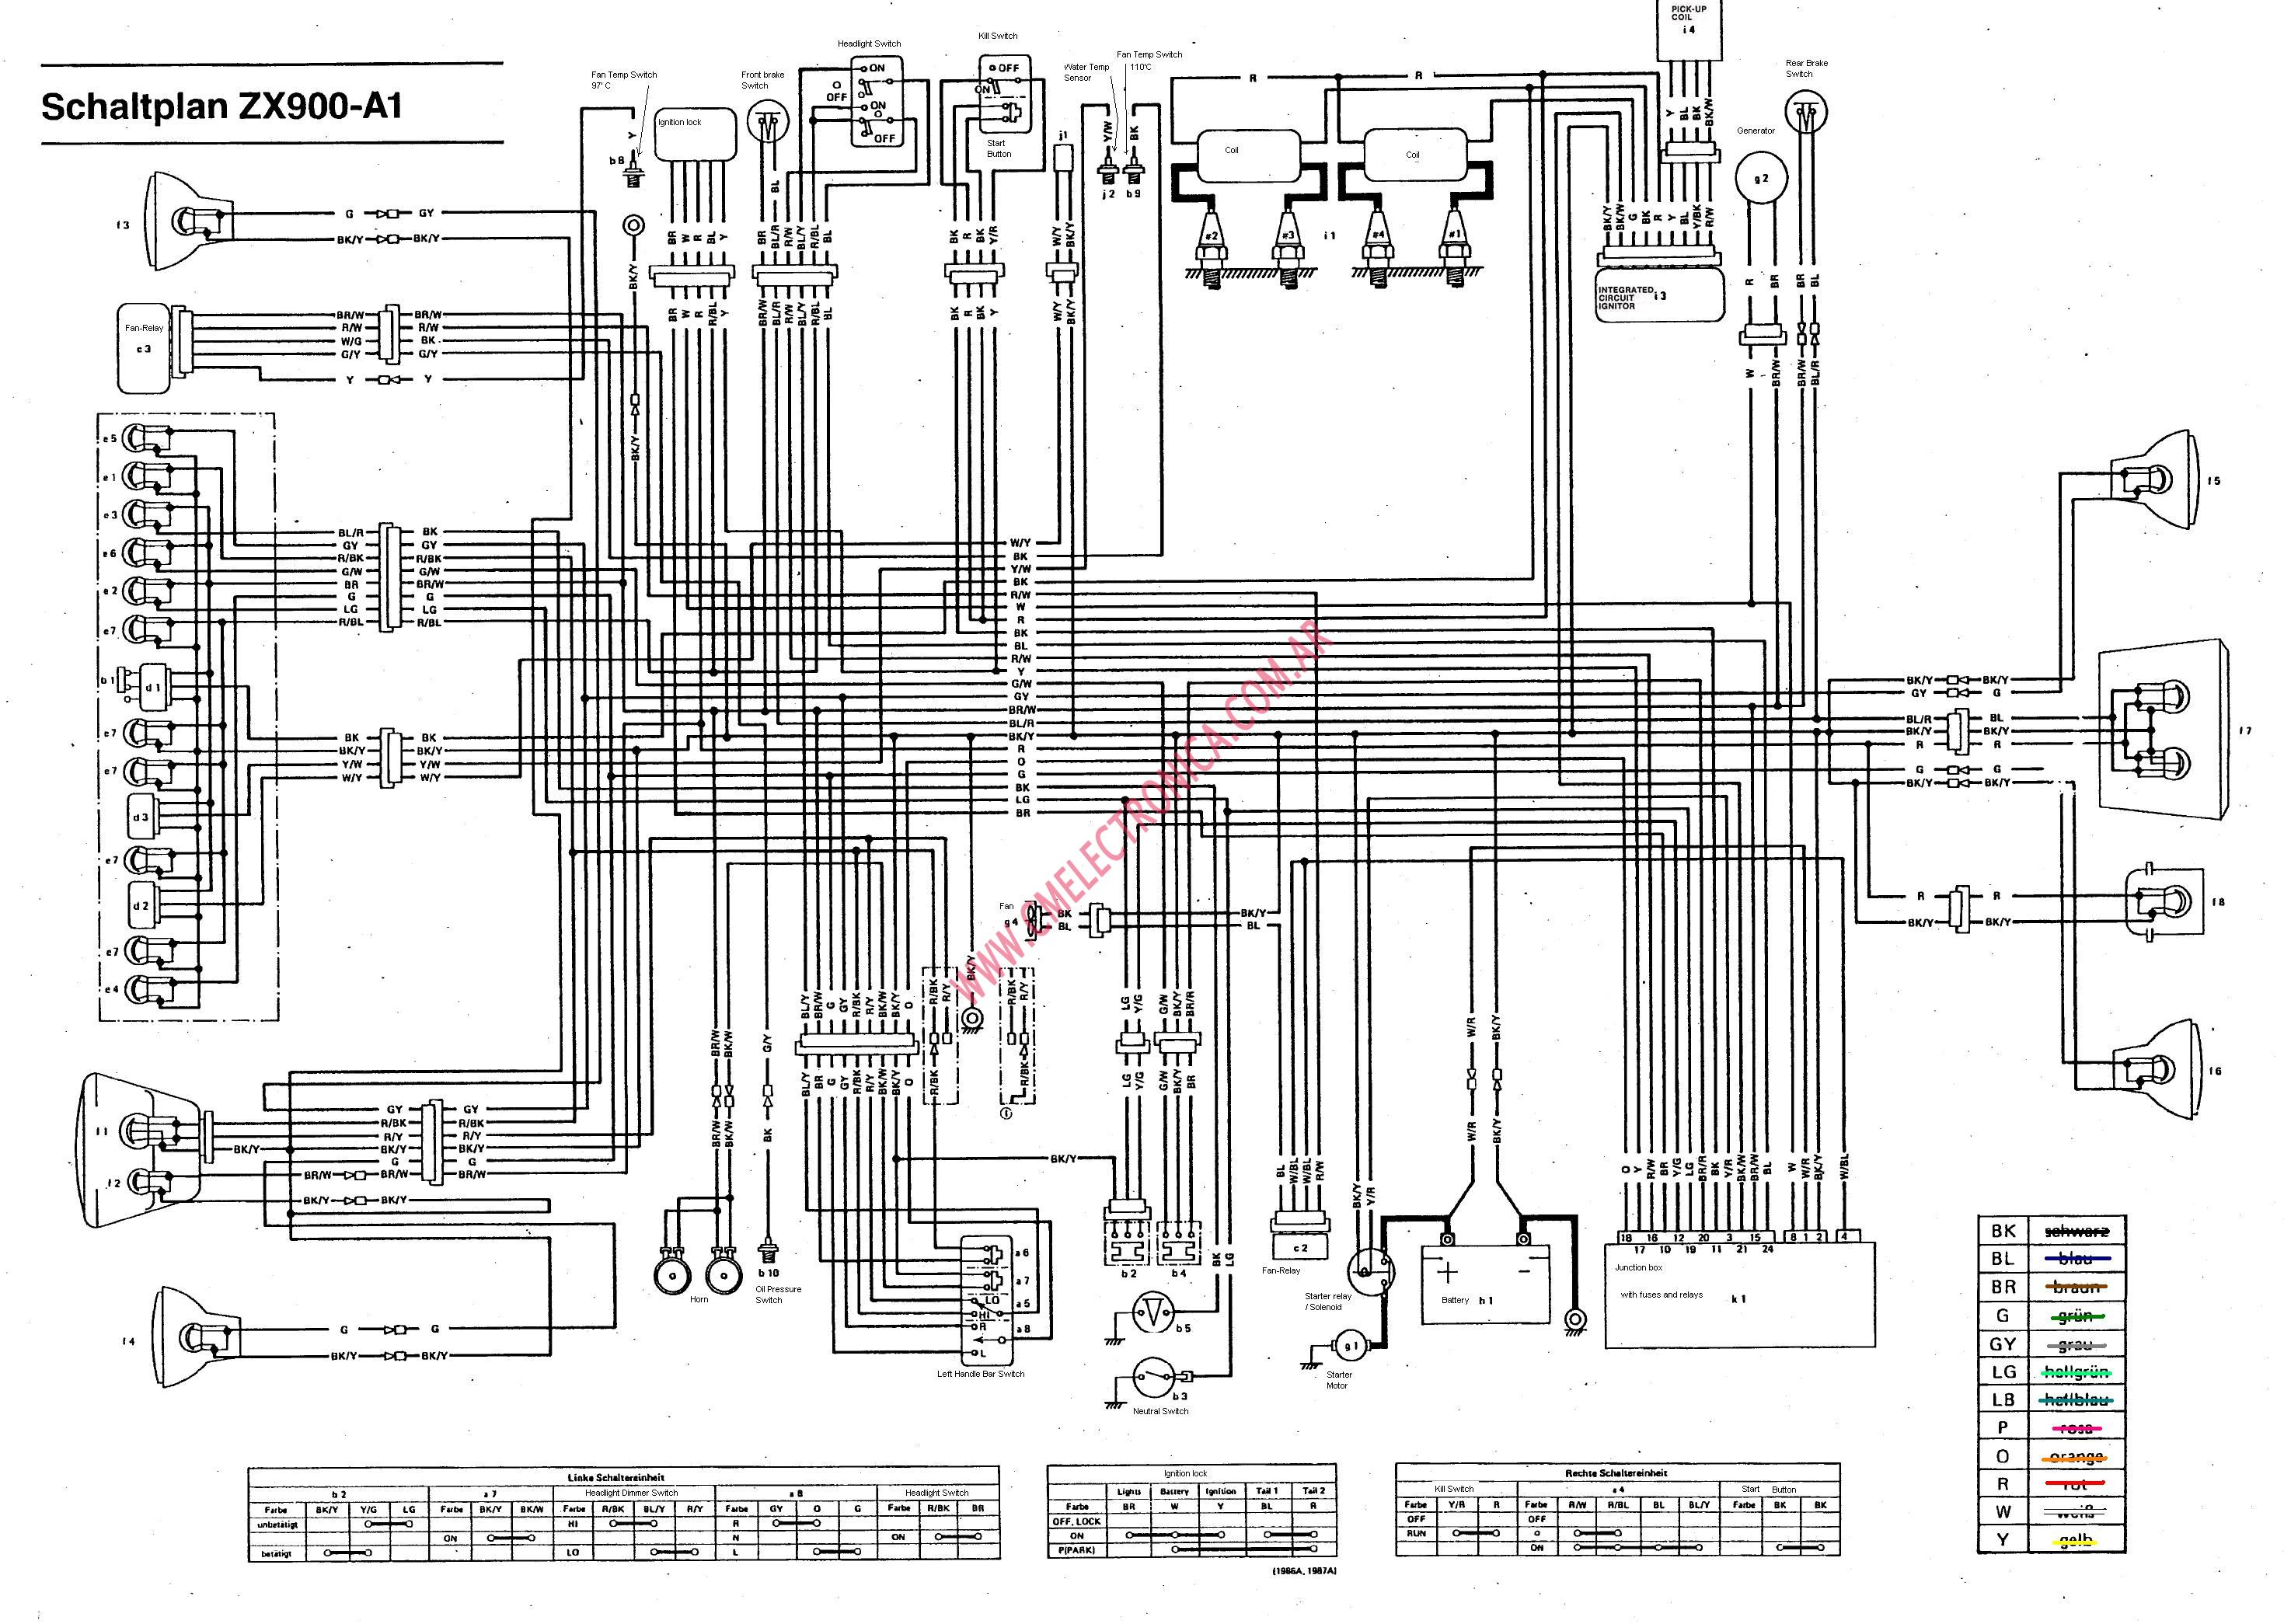 Kawasaki Motorcycles 900 Wiring Diagram Electrical Work Ke100 Ninja 500 Get Free Image About Bayou 220